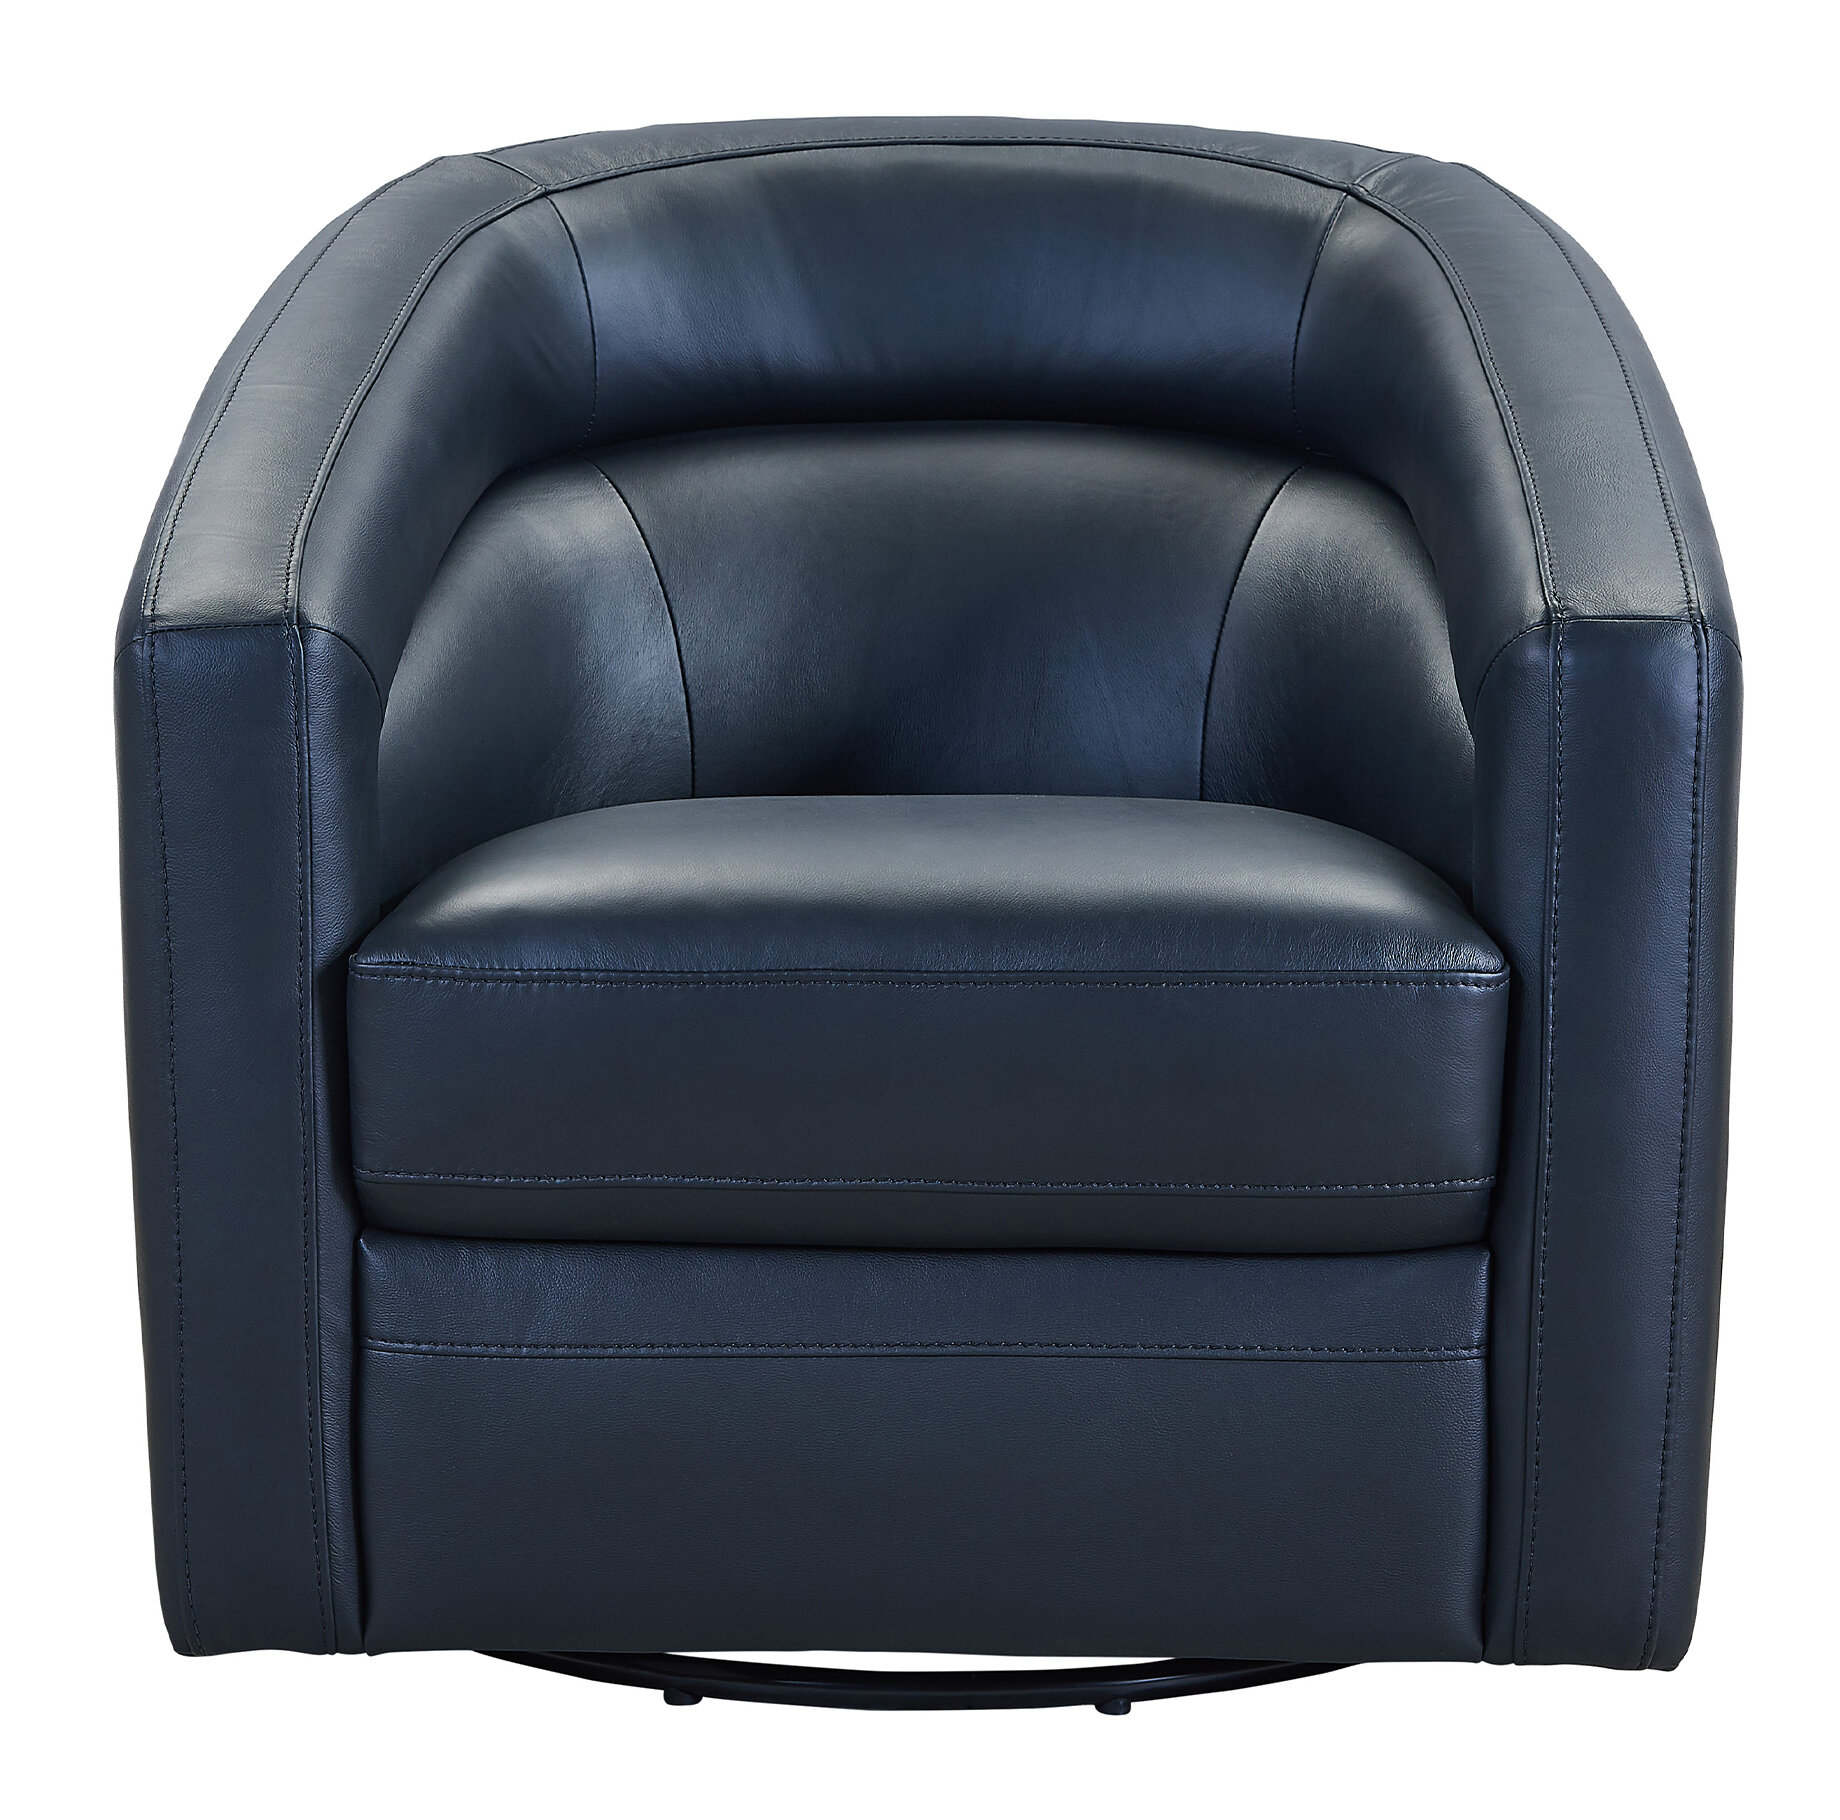 Merveilleux Silloth Contemporary Genuine Leather Swivel Barrel Chair